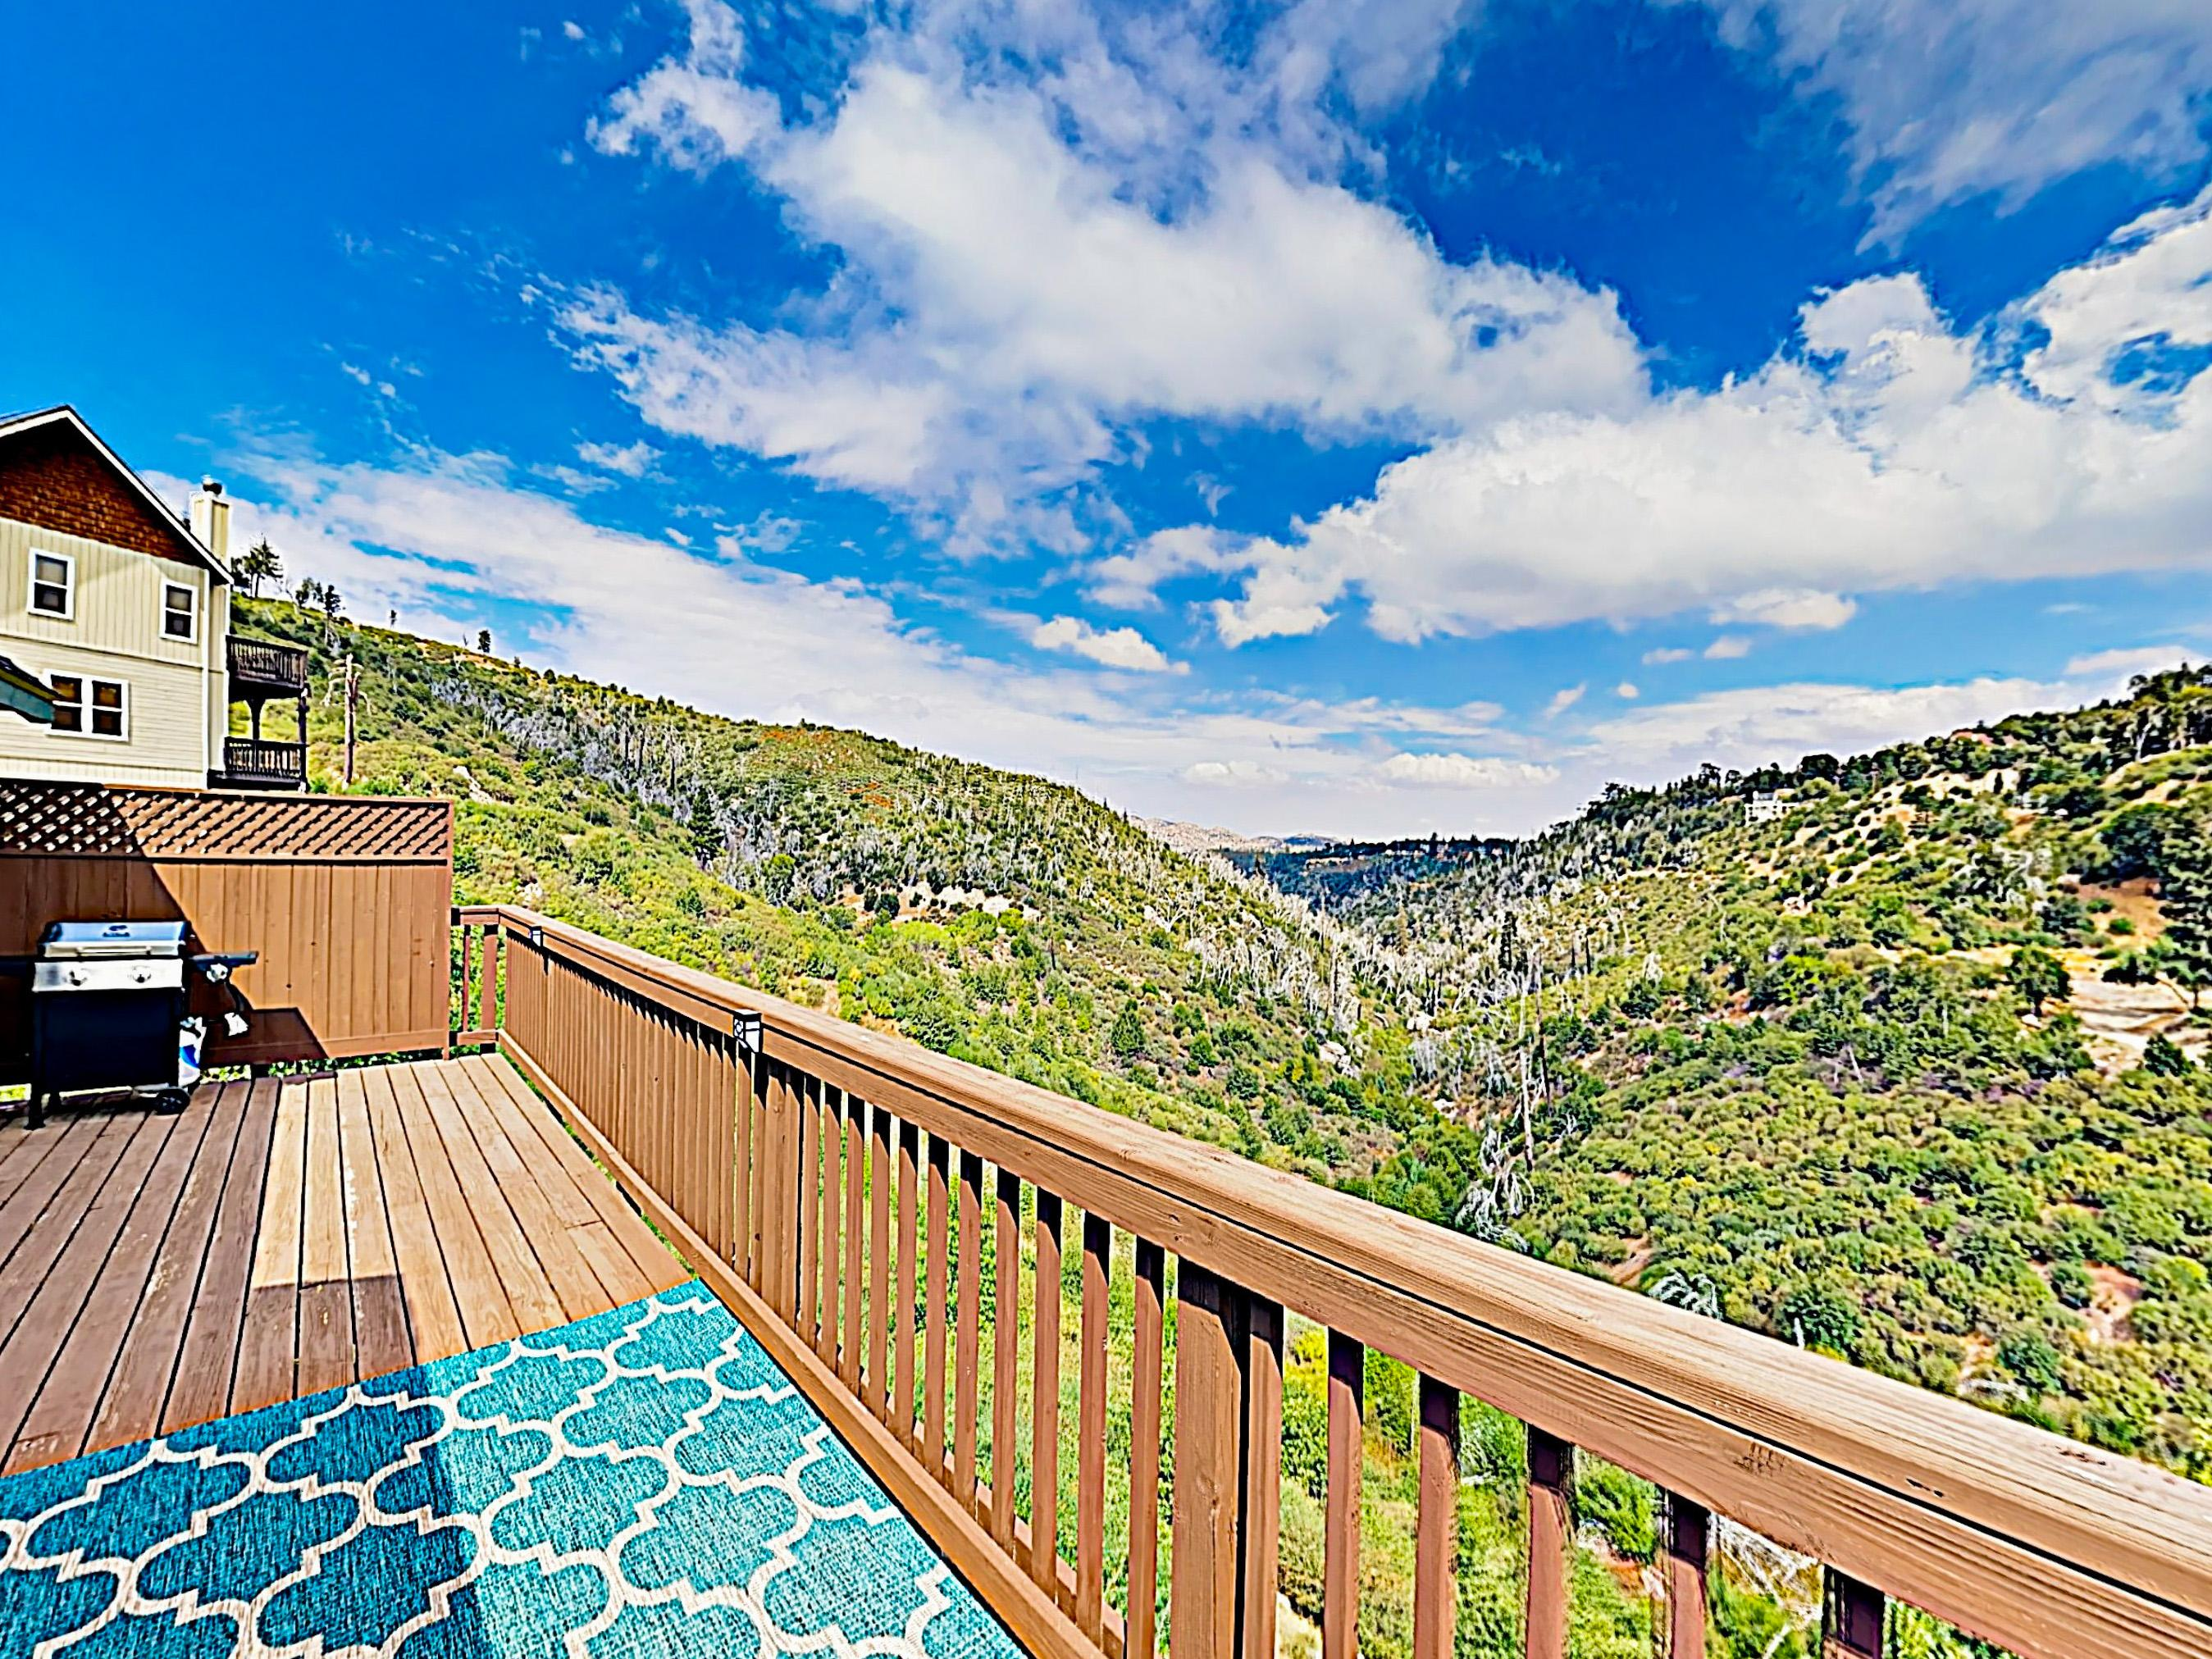 Welcome to Lake Arrowhead! This home is professionally managed by TurnKey Vacation Rentals. Take in mountain vistas from the sweeping upper balcony.